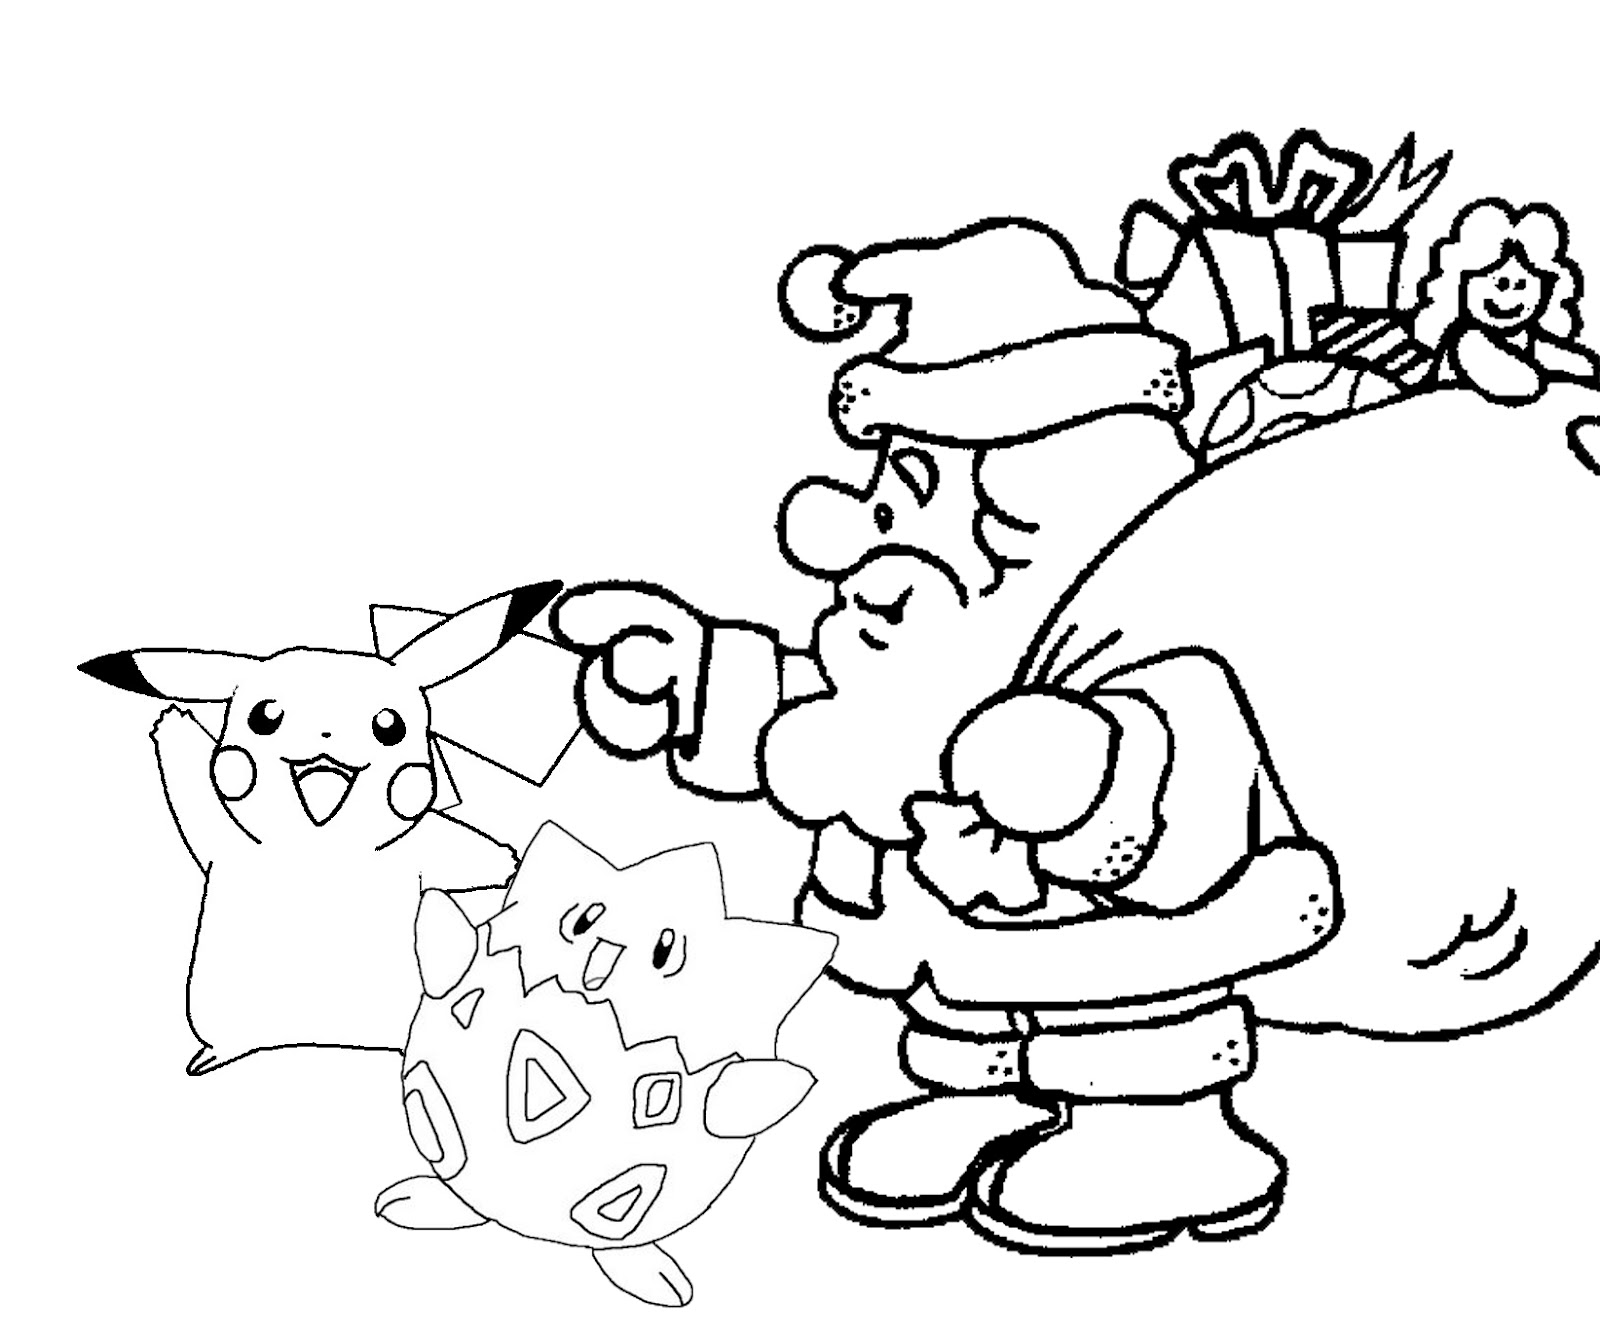 merry christmas coloring pages - Merry Christmas Coloring Pages That Say (Merry